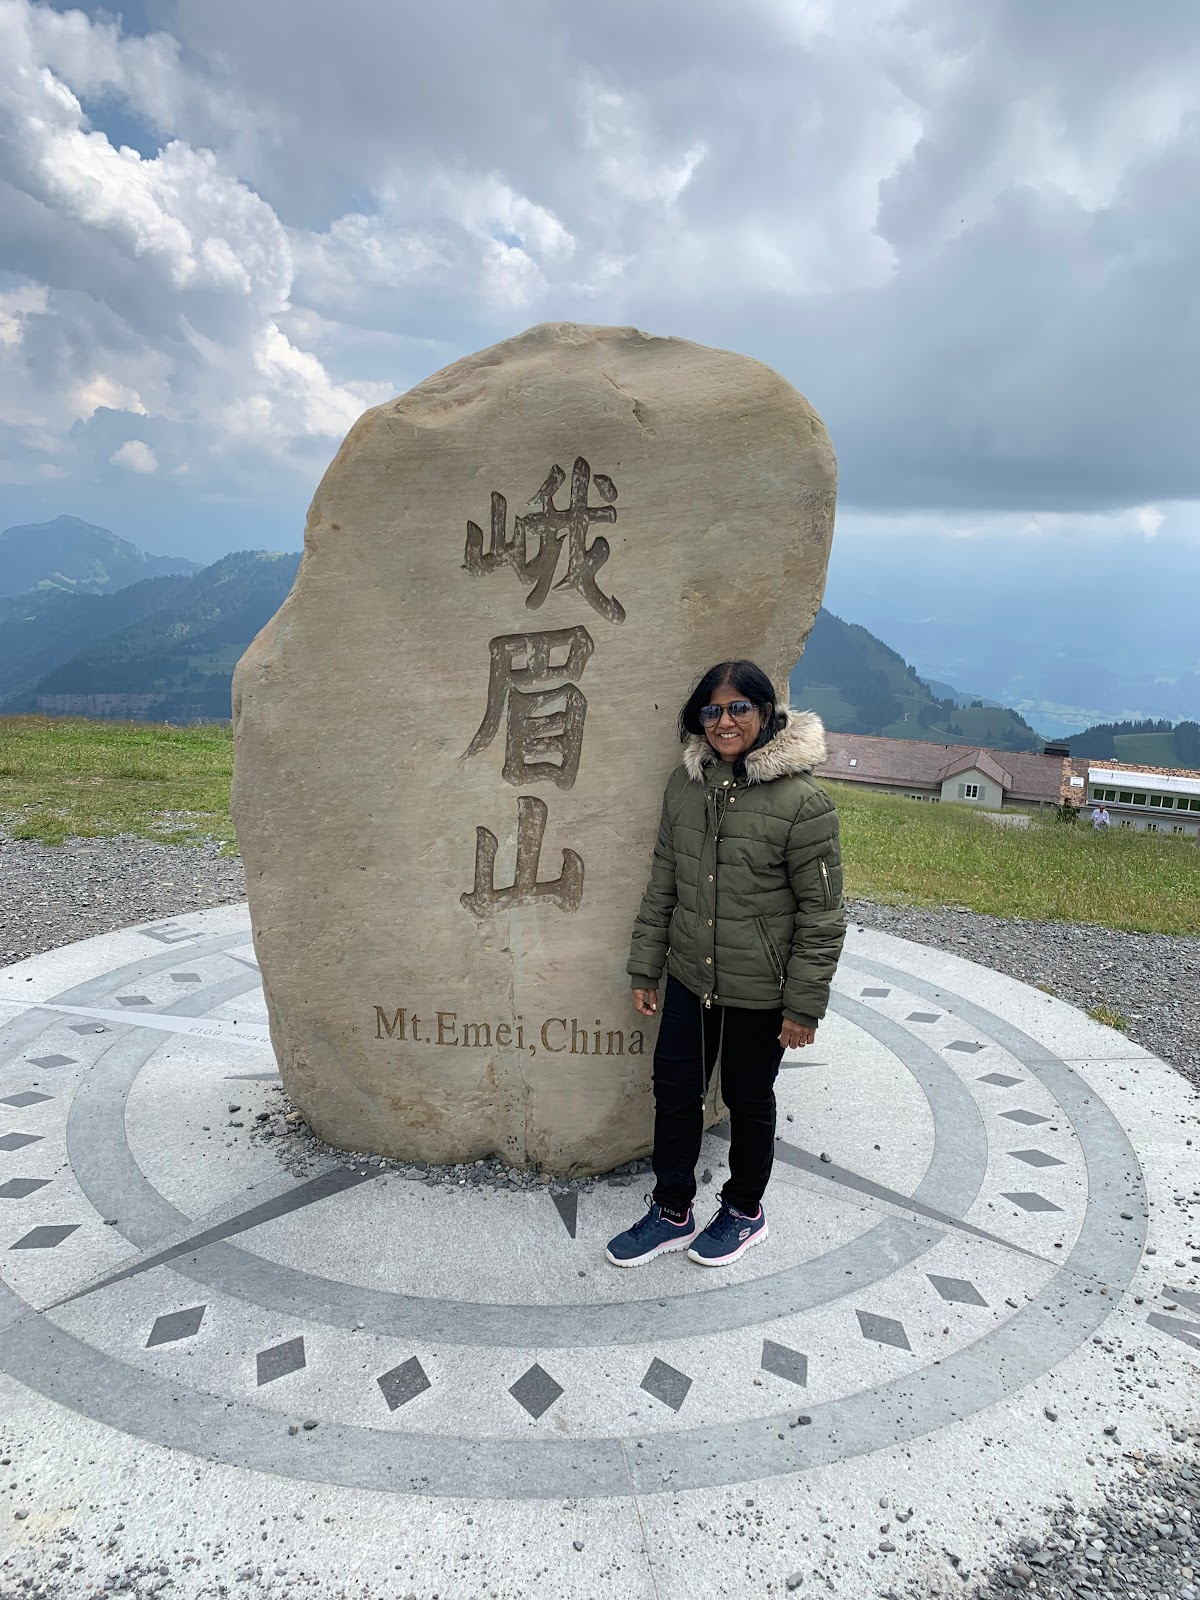 Mt. Emei stone at Rigi Kulm